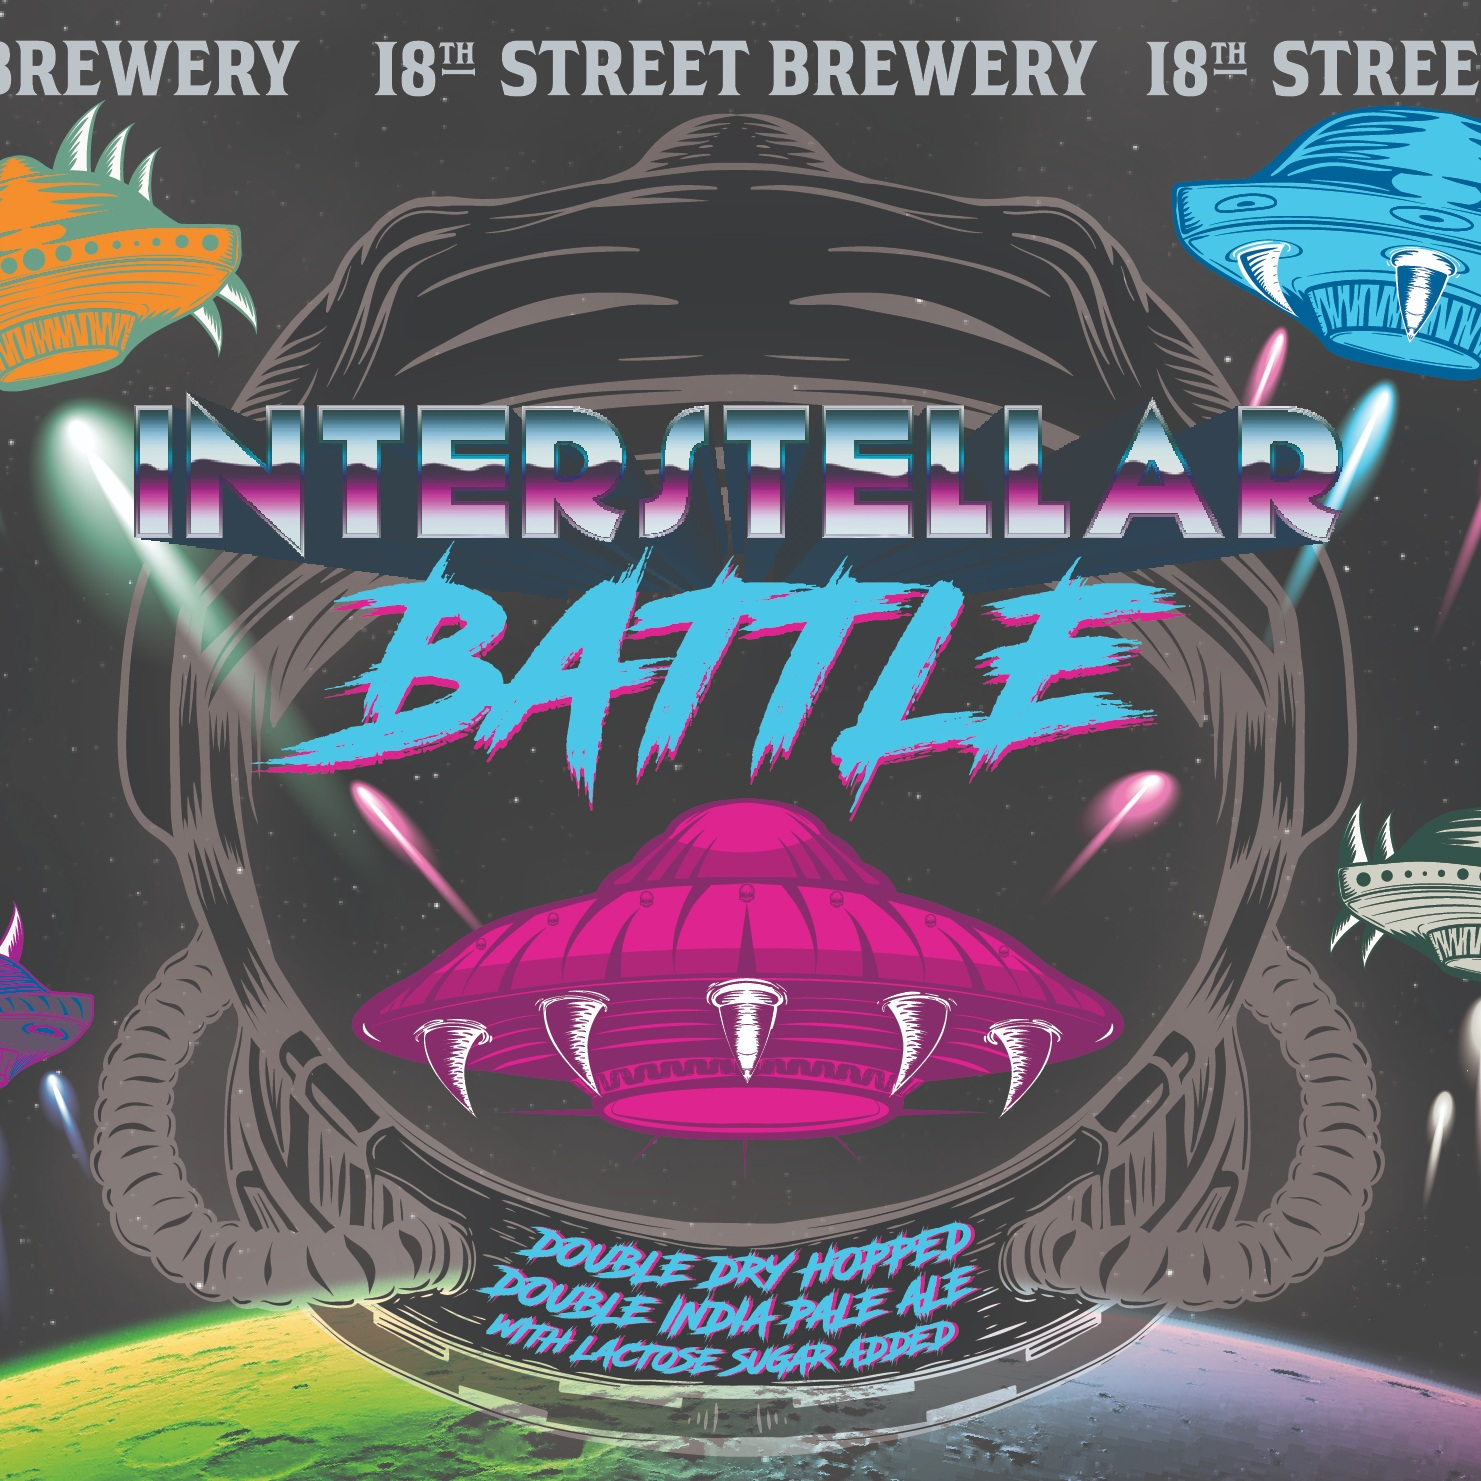 18TH STREET BREWERY - INTERSTELLAR BATTLE